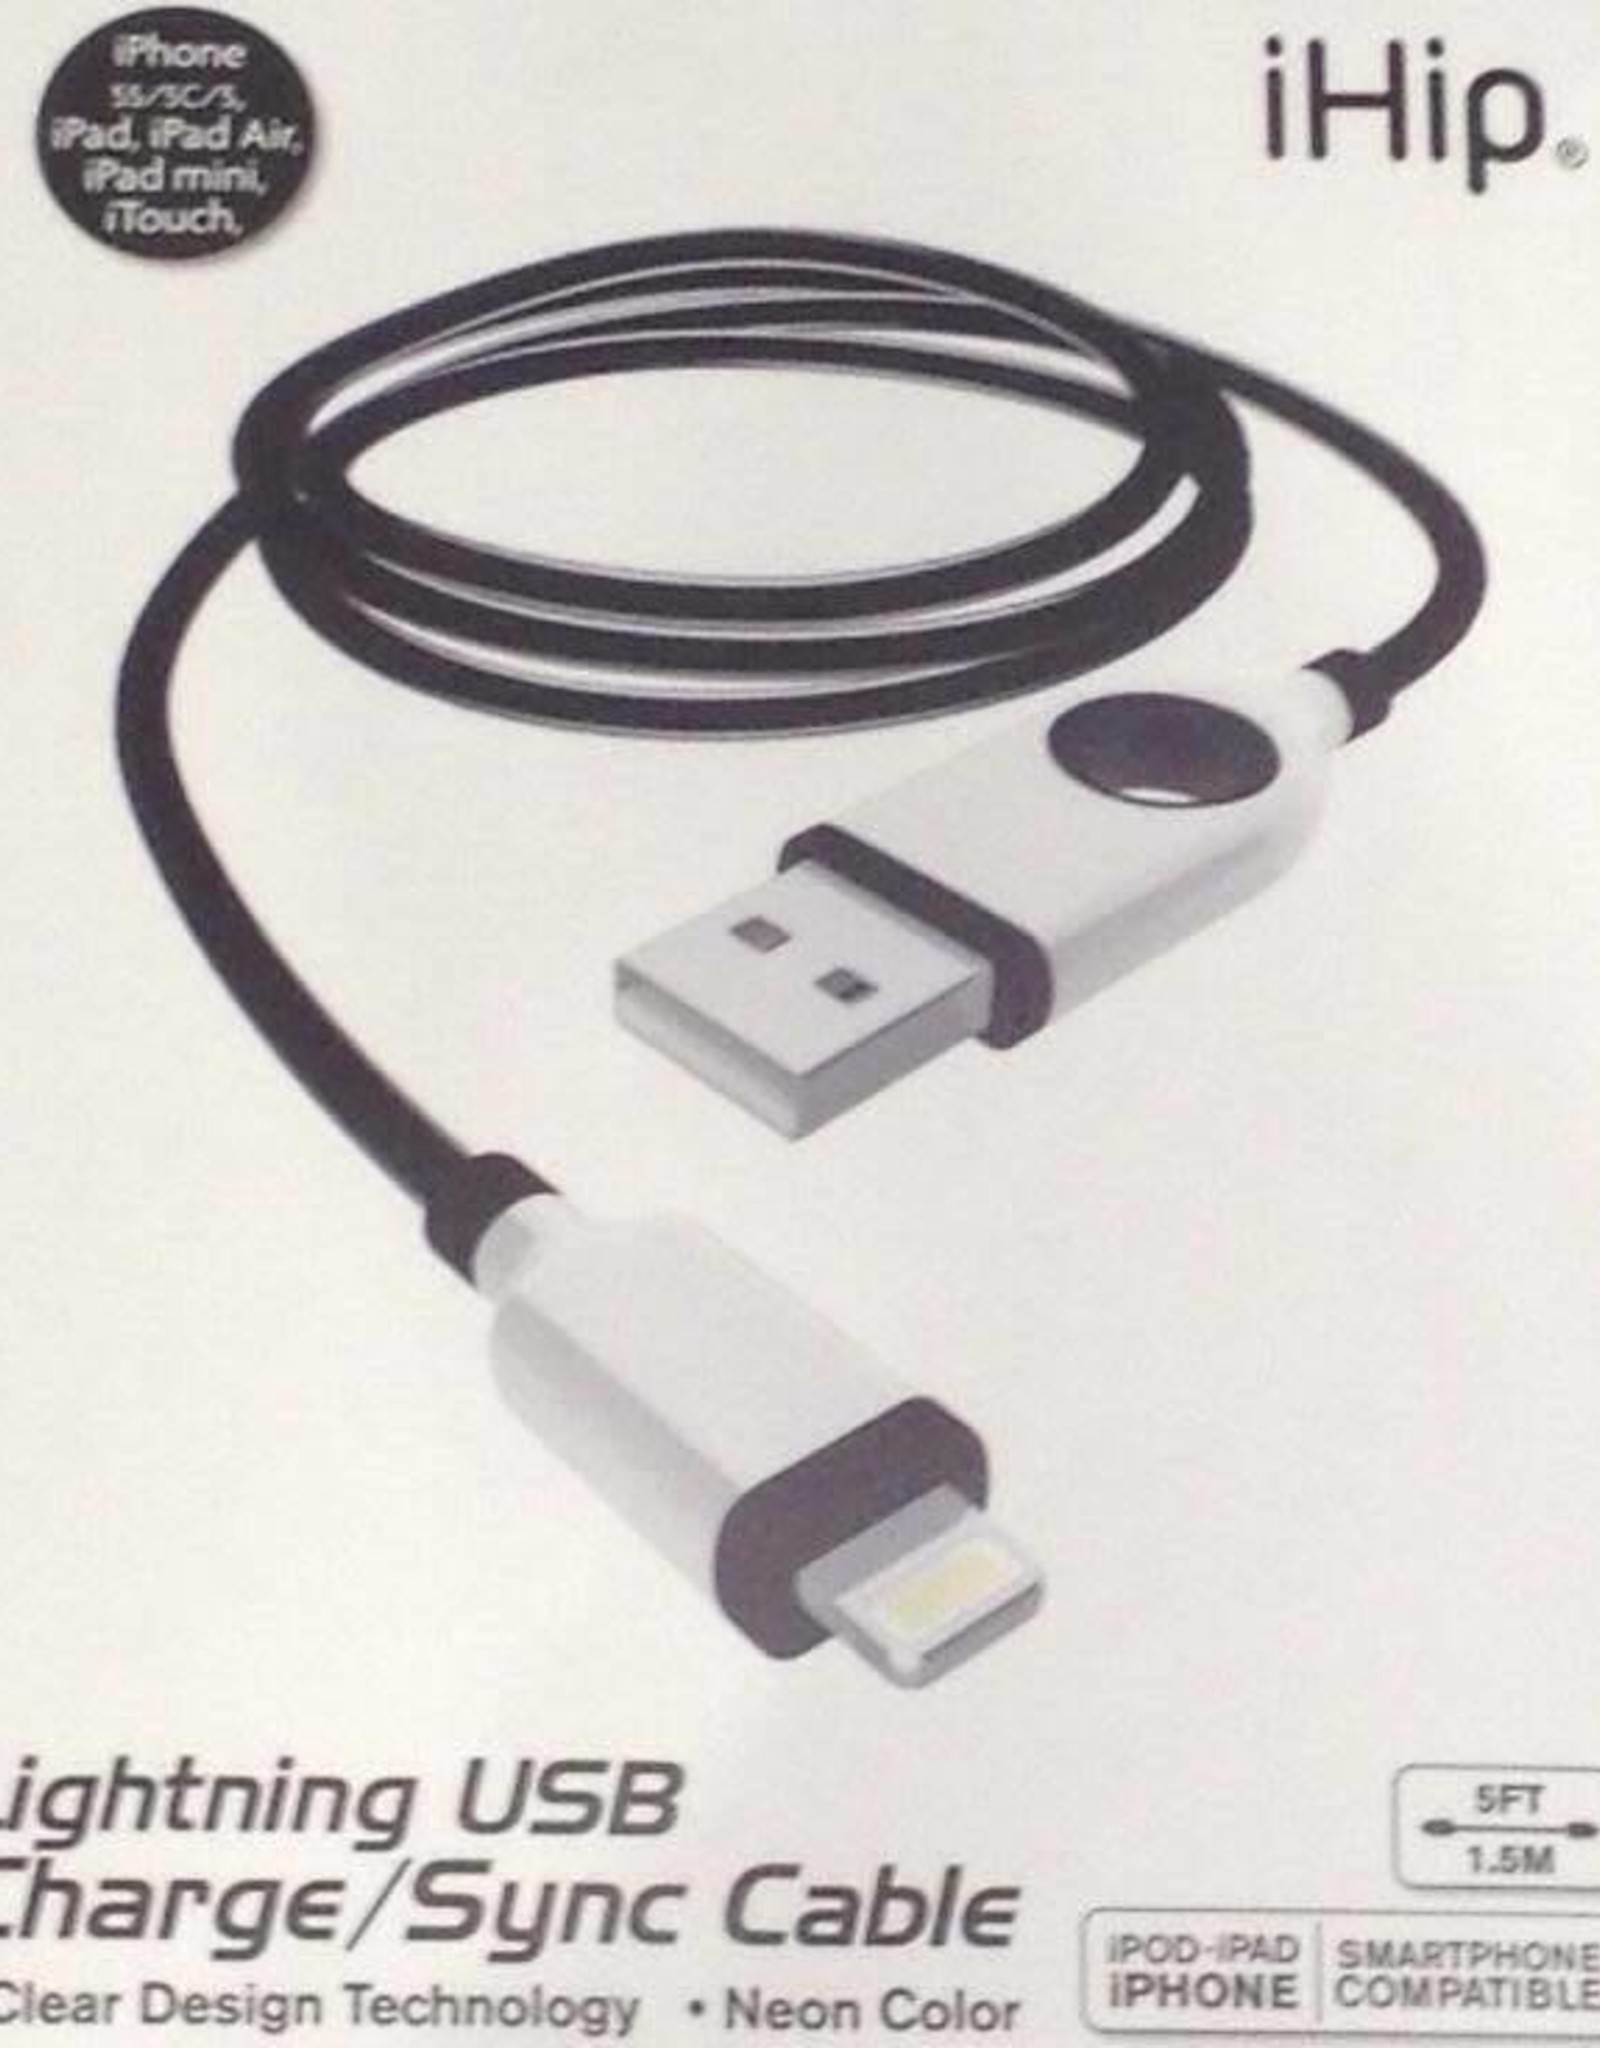 Apple 8 pin USB 5 ft Cable